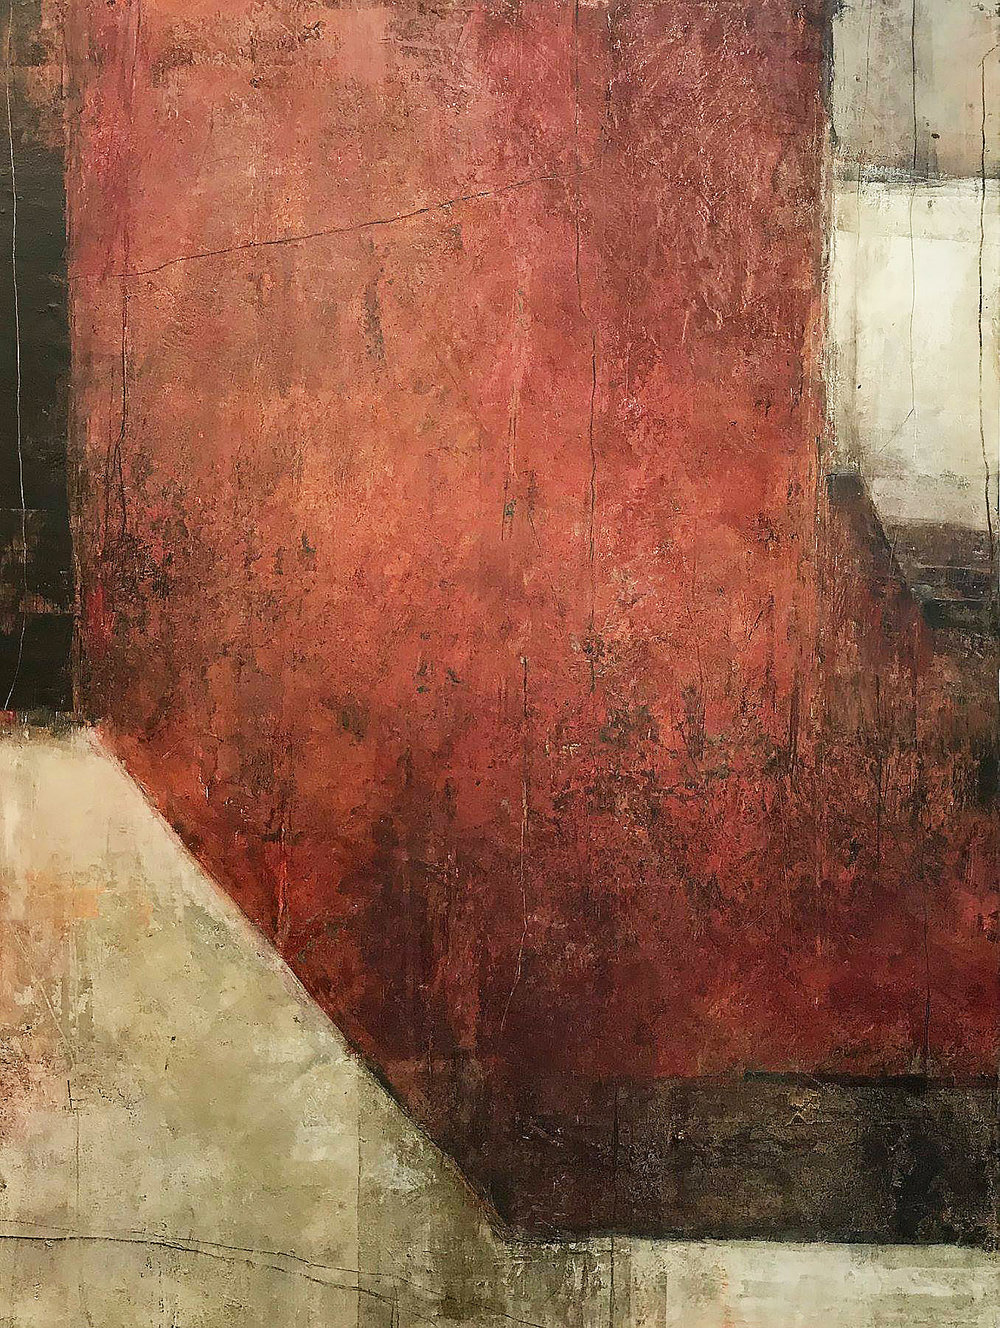 Dwelling, Rebecca Crowell . Oil and cold wax on panel, 48x36 in, 2018.